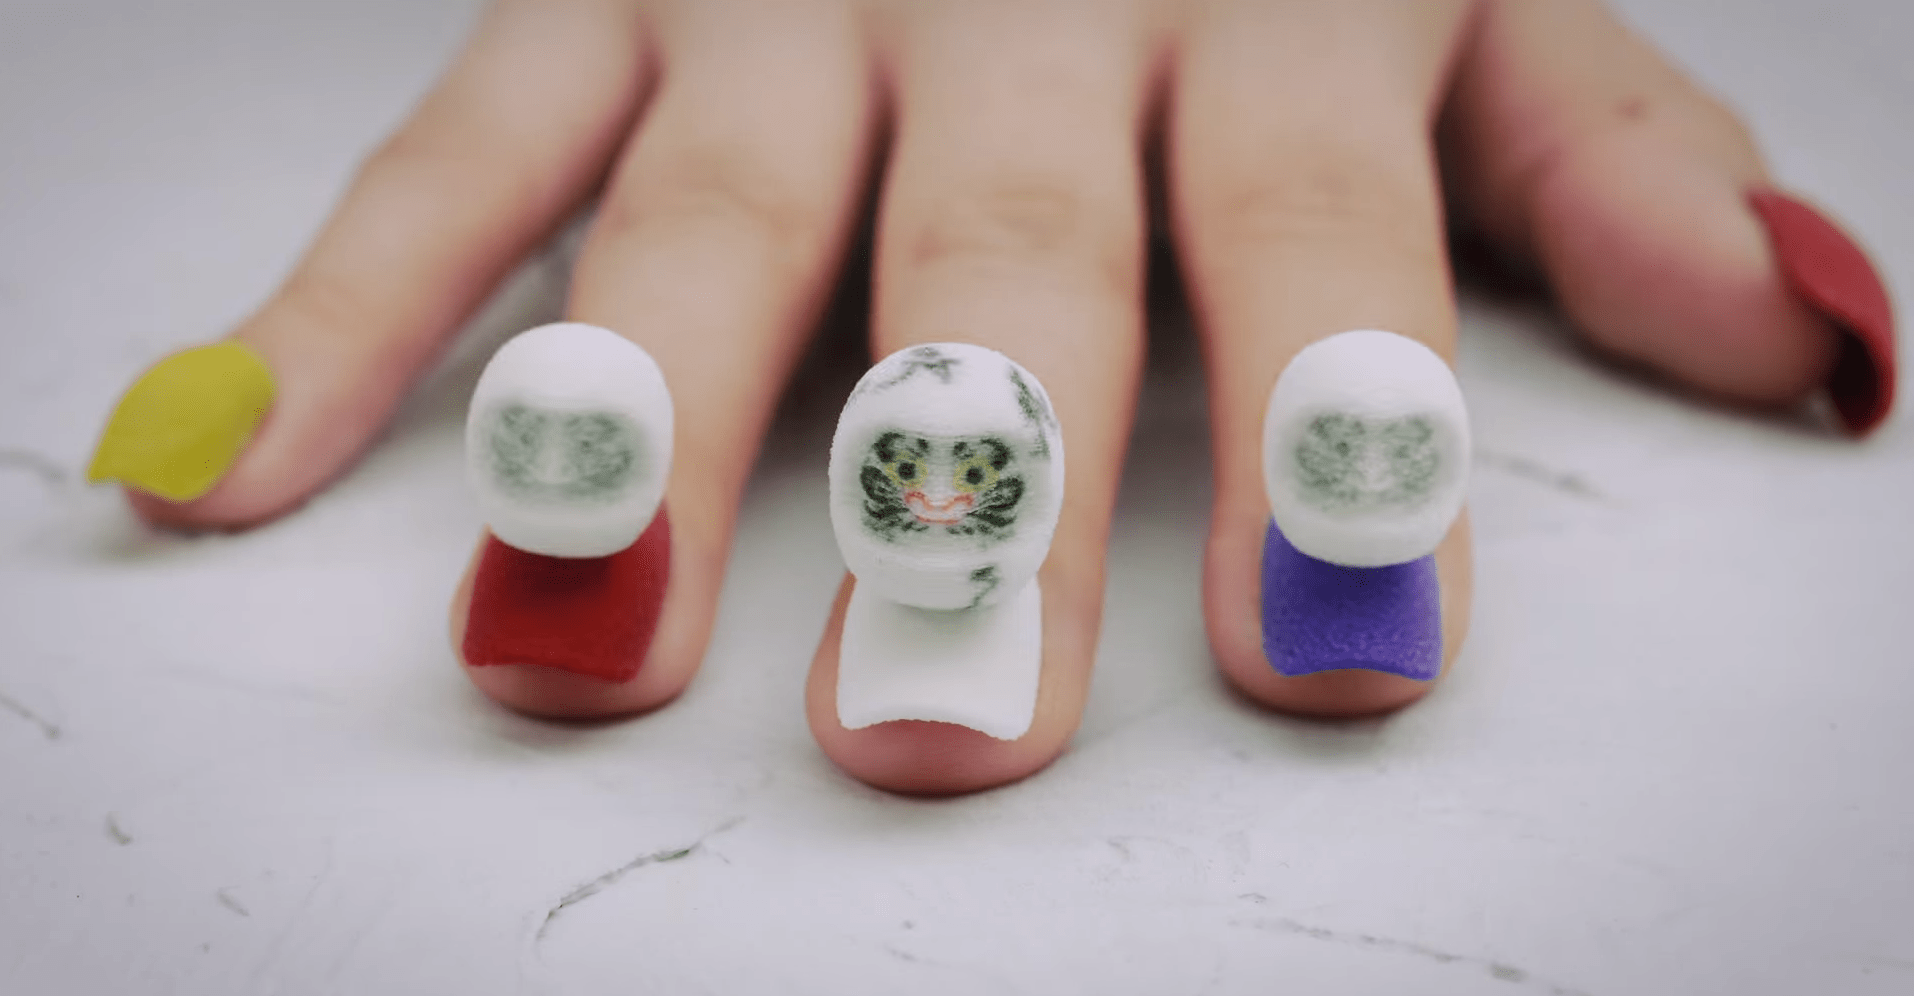 Stop Motion Nail Art Is A Sneak Preview Of Our Augmented Reality Future The Verge